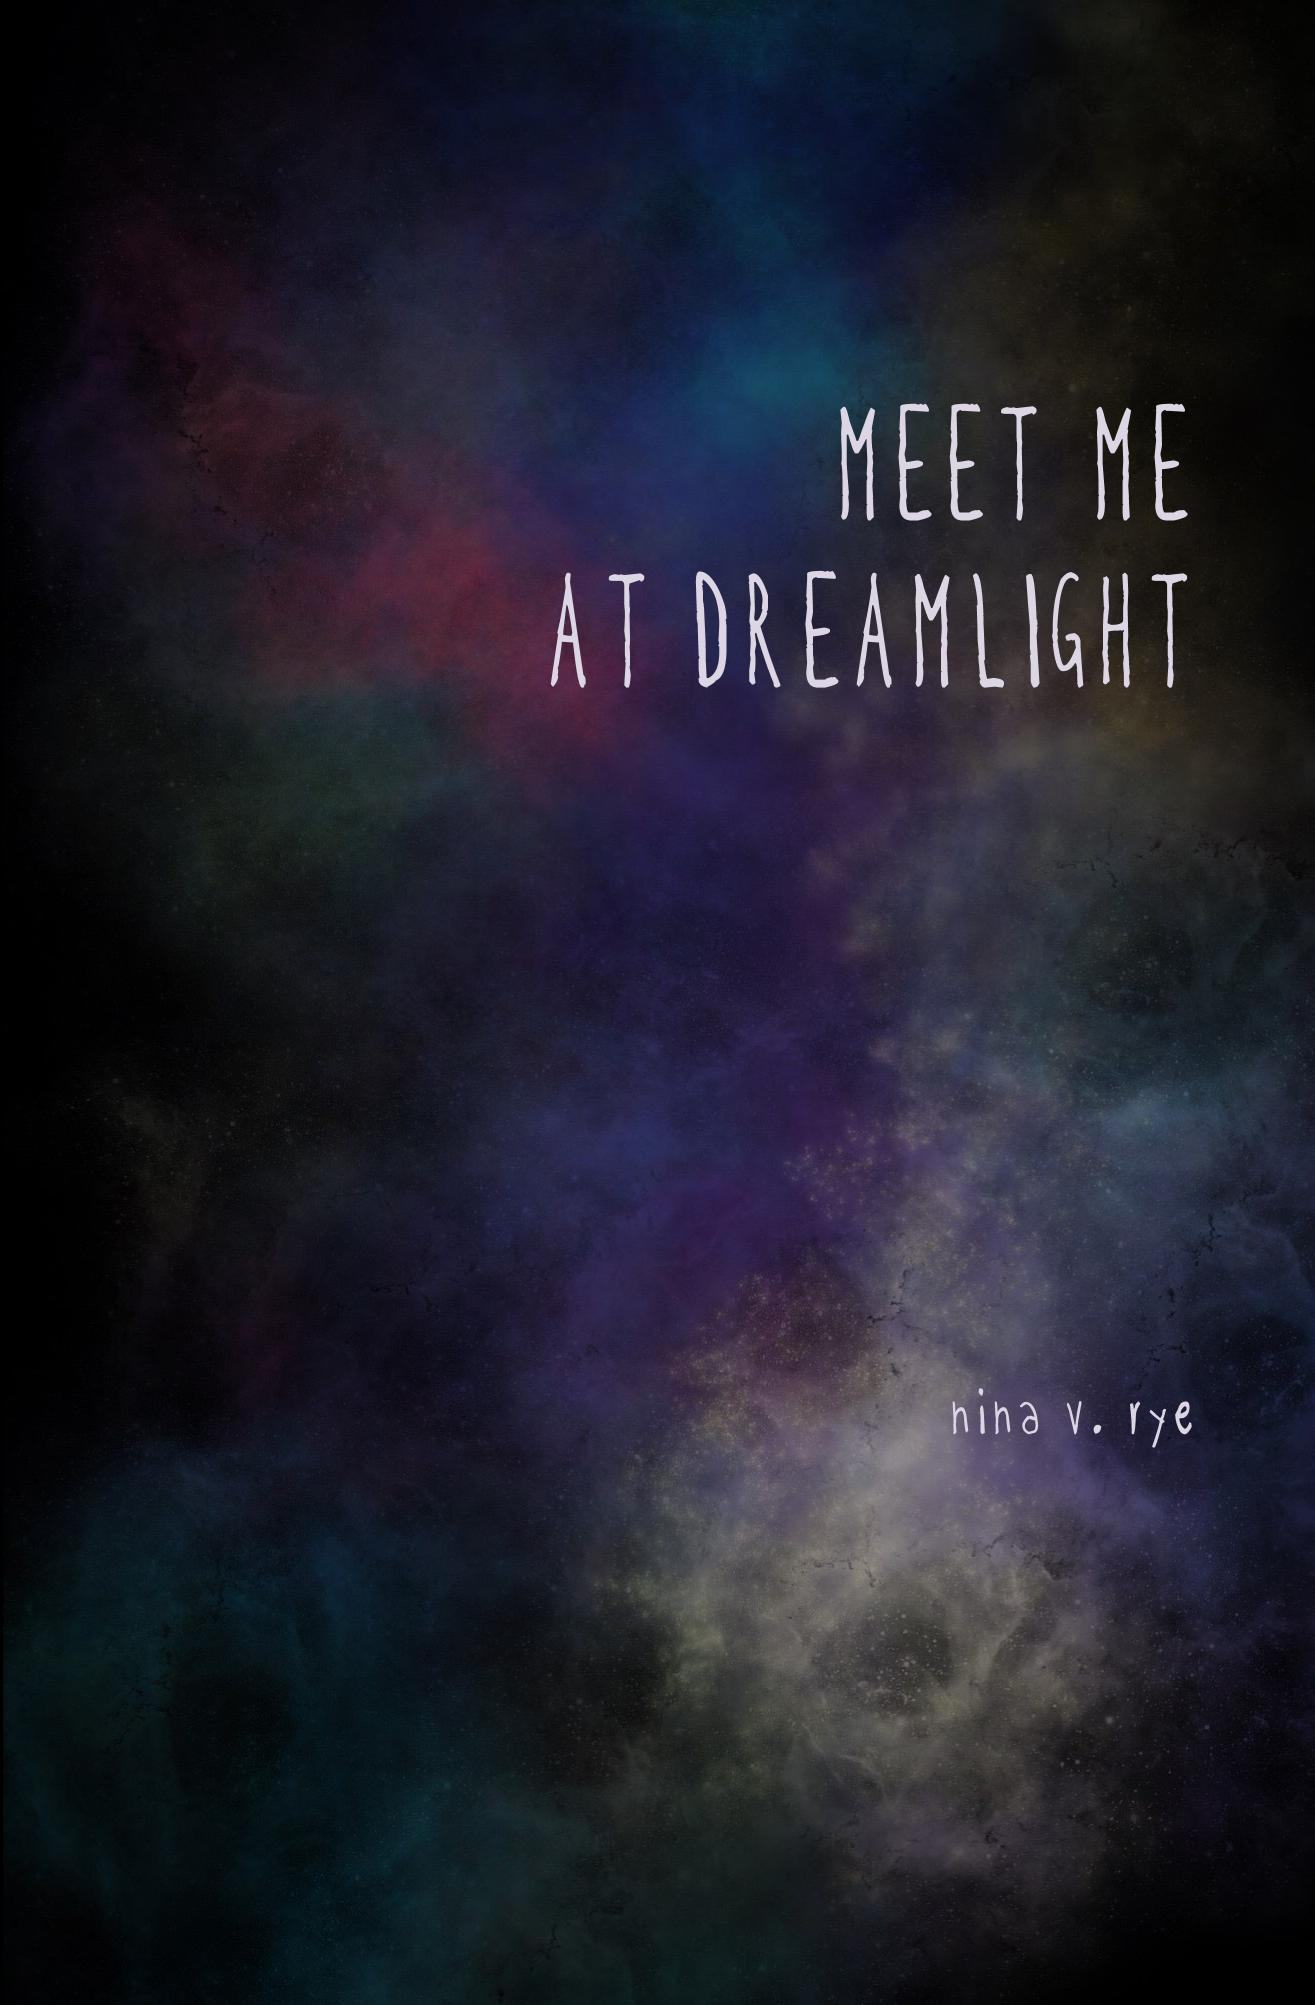 Meet_me_at_dreamligh_Cover_for_Kindle.jpg